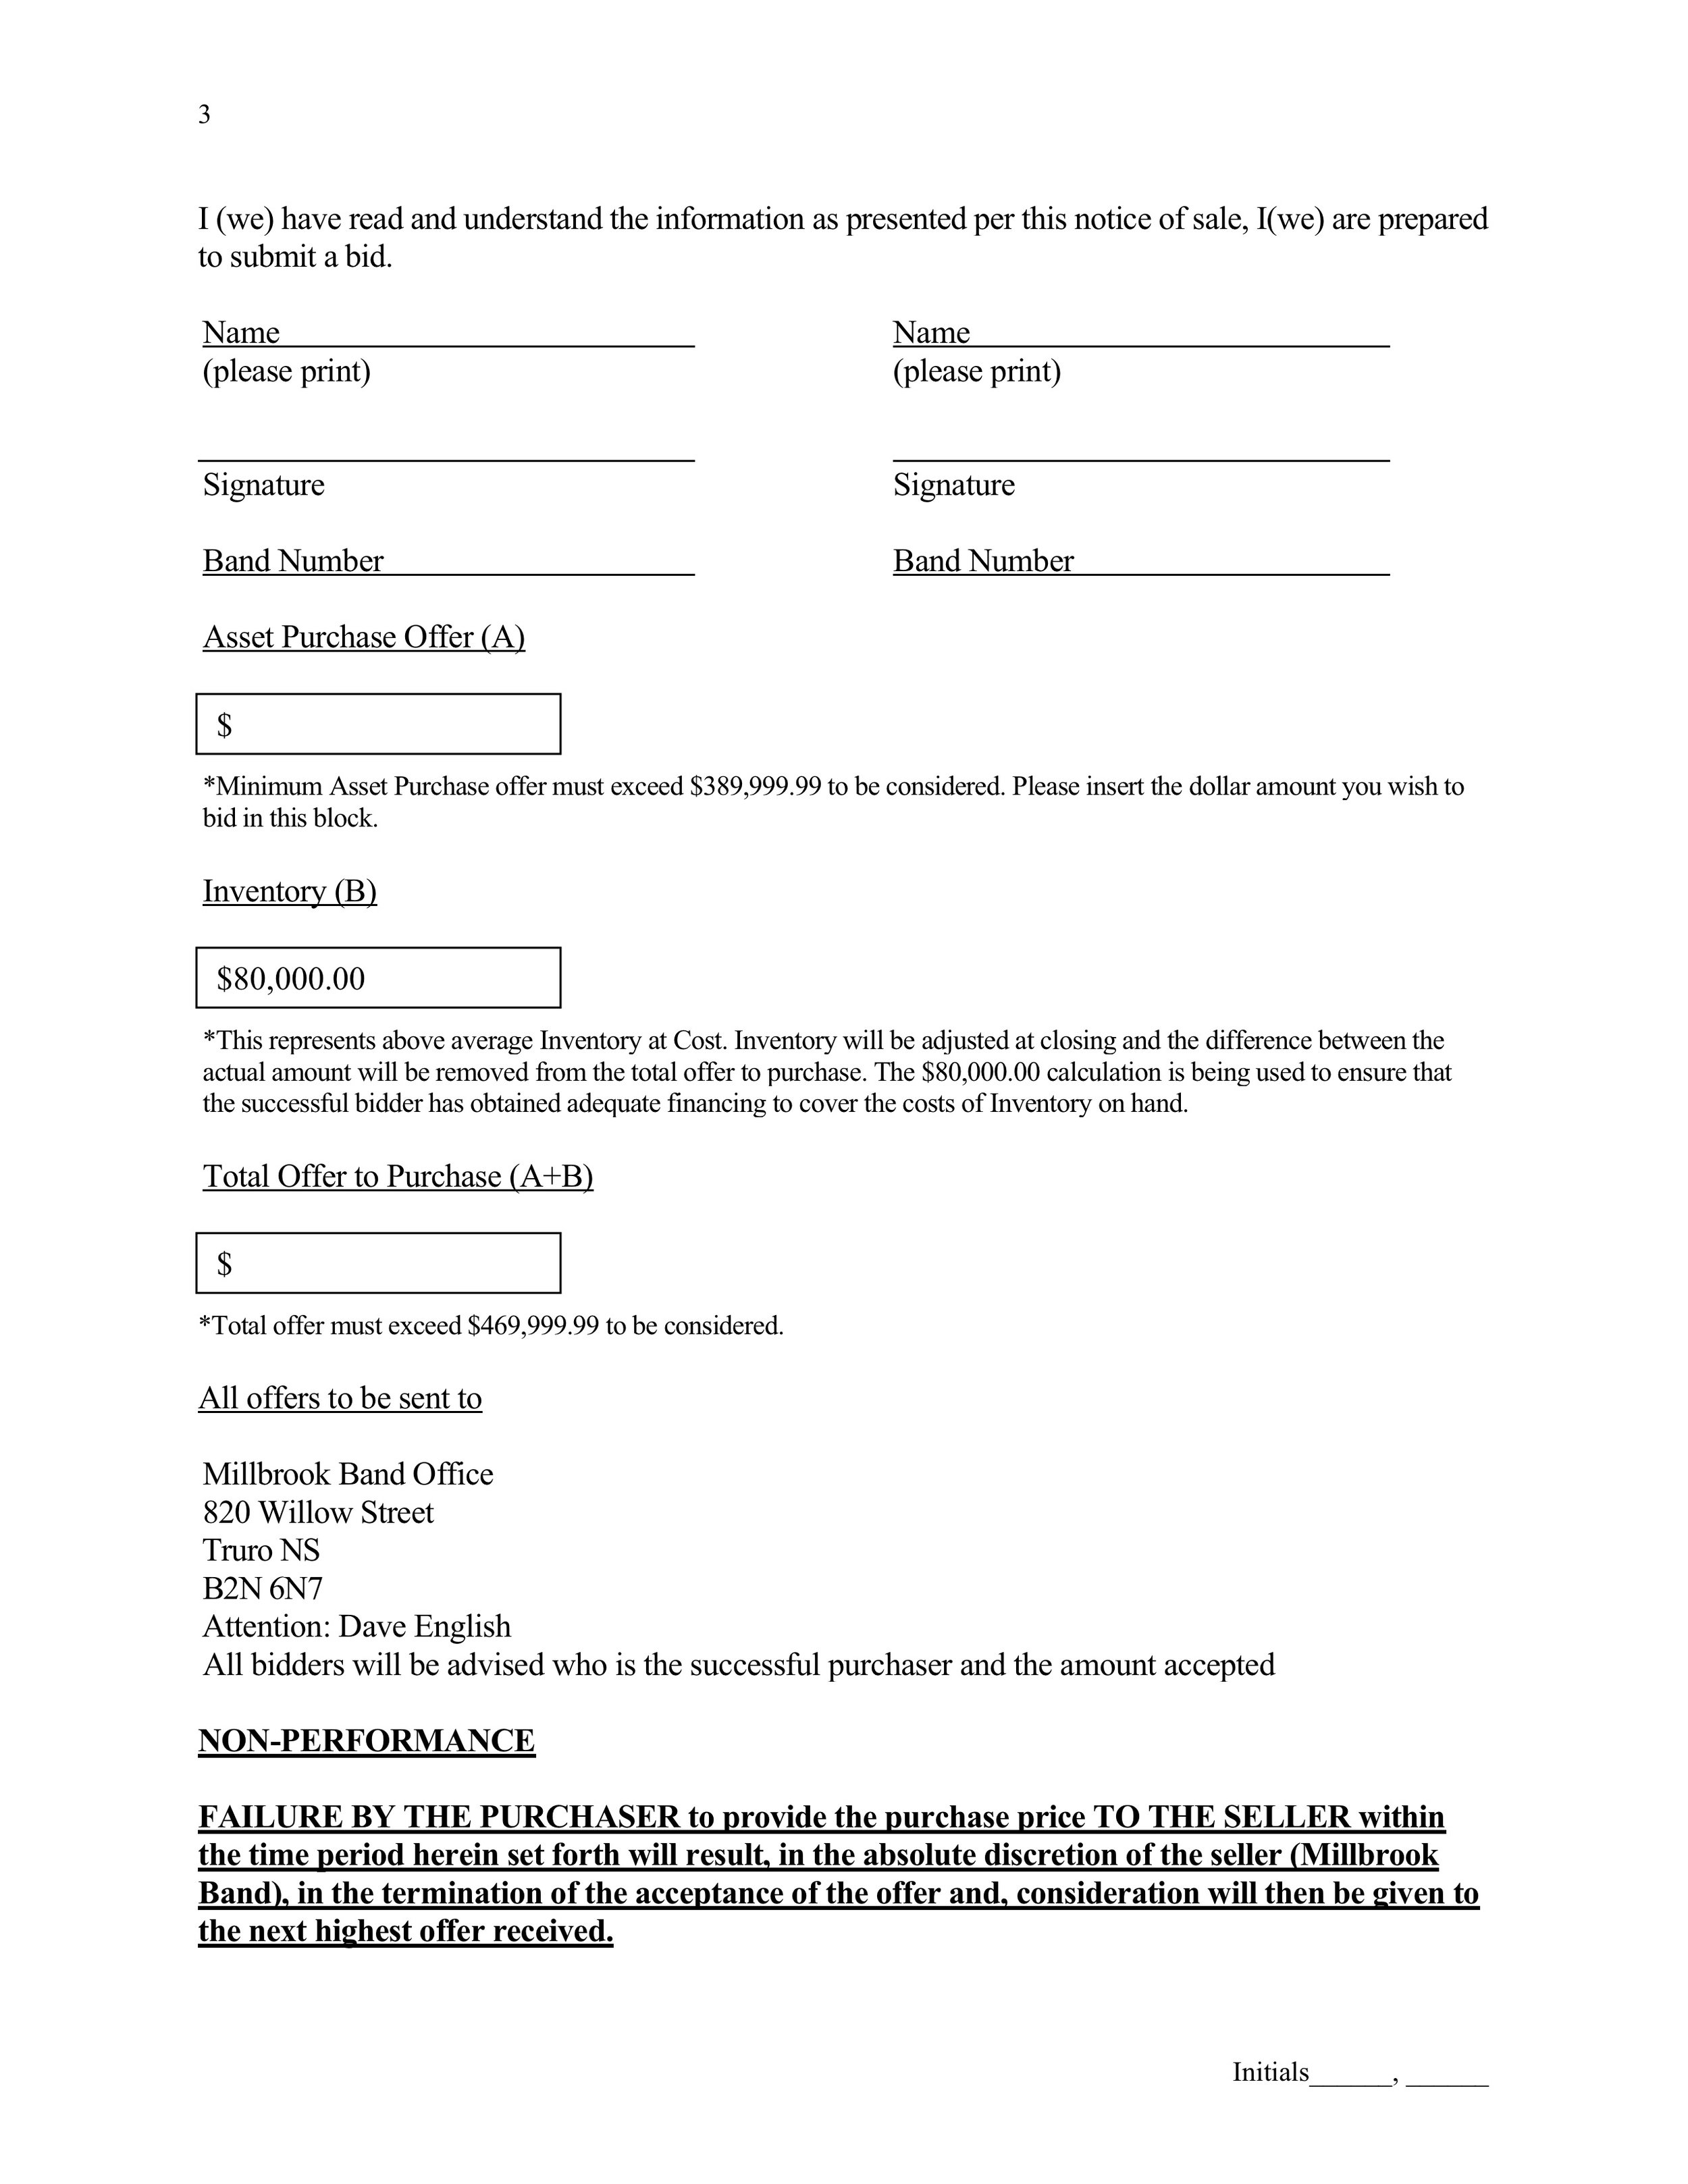 Cole Harbour Gas Bar Asset Purchase Document Revised-1-June 17th 2019 (3)3.jpg